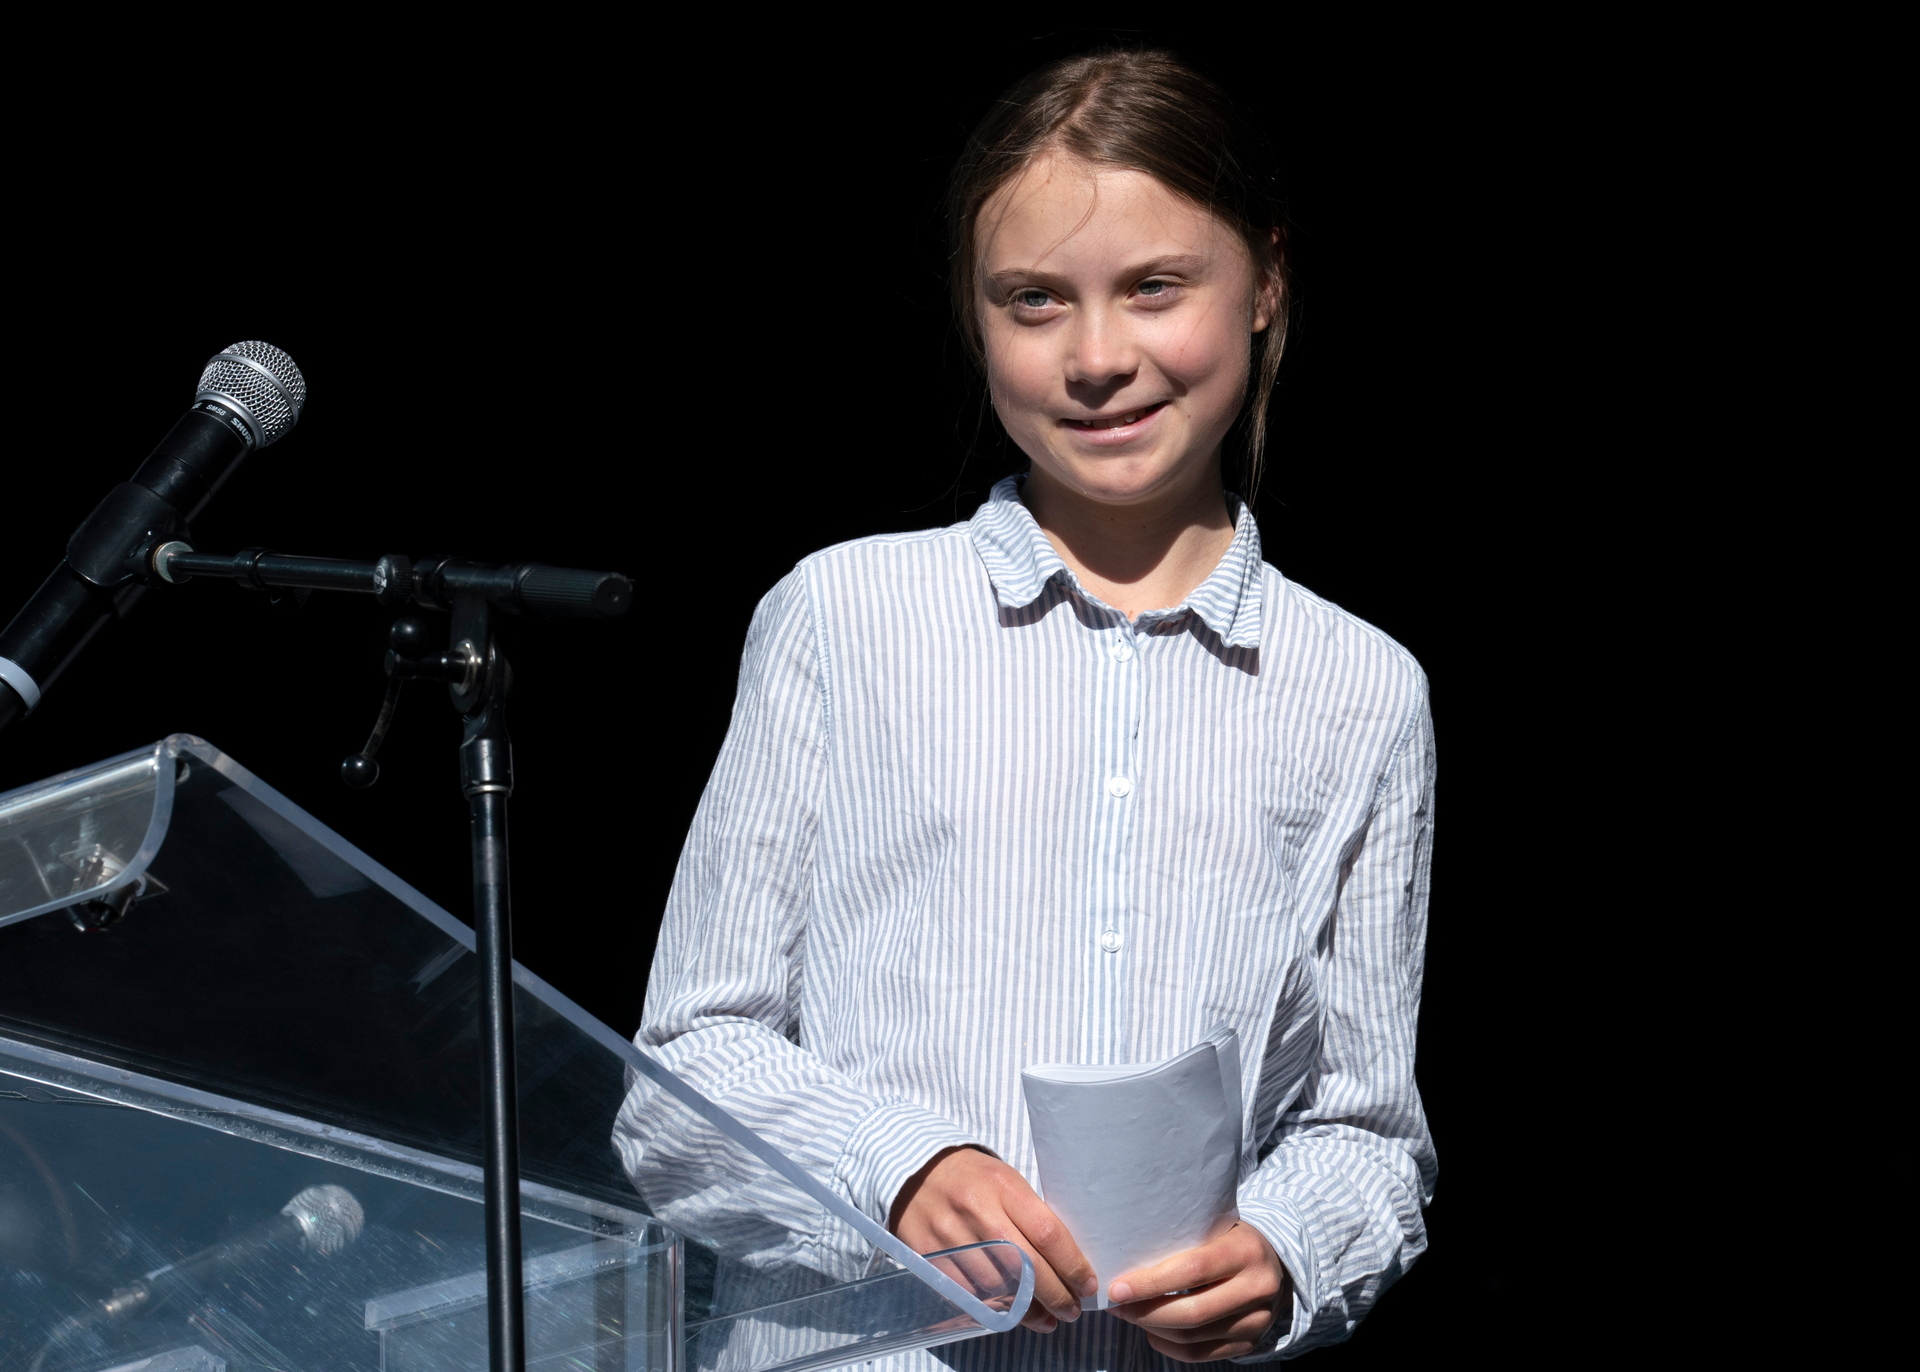 Why climate trolls have failed to stop Greta Thunberg